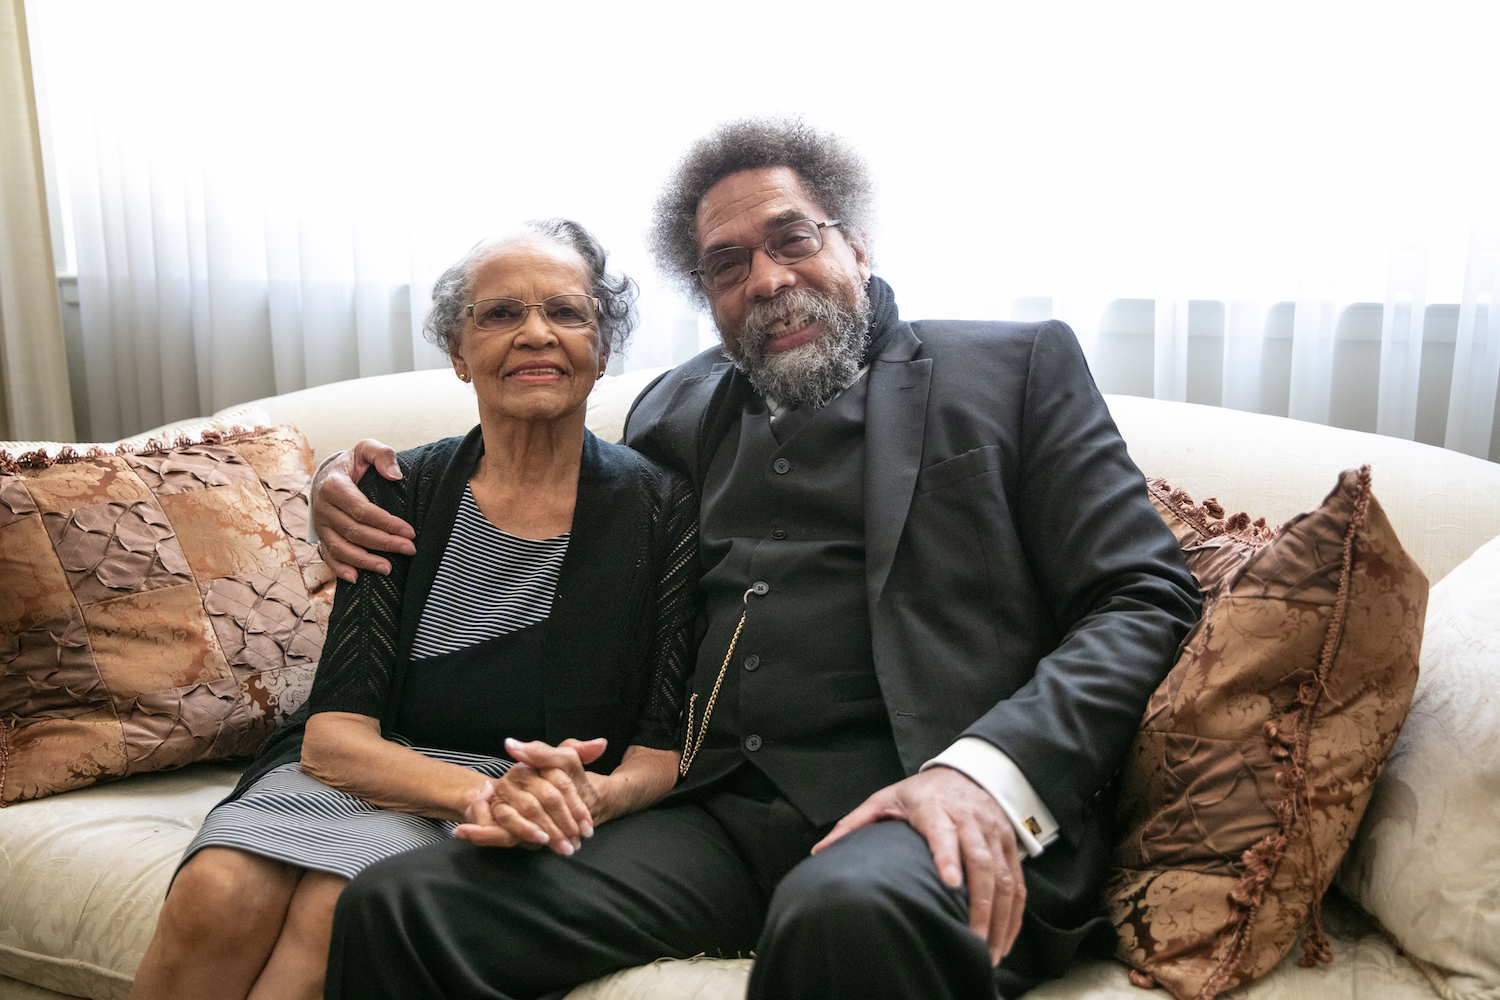 Cornel West And His Mom Irene West In Sacramento, California, July 2, 2019.